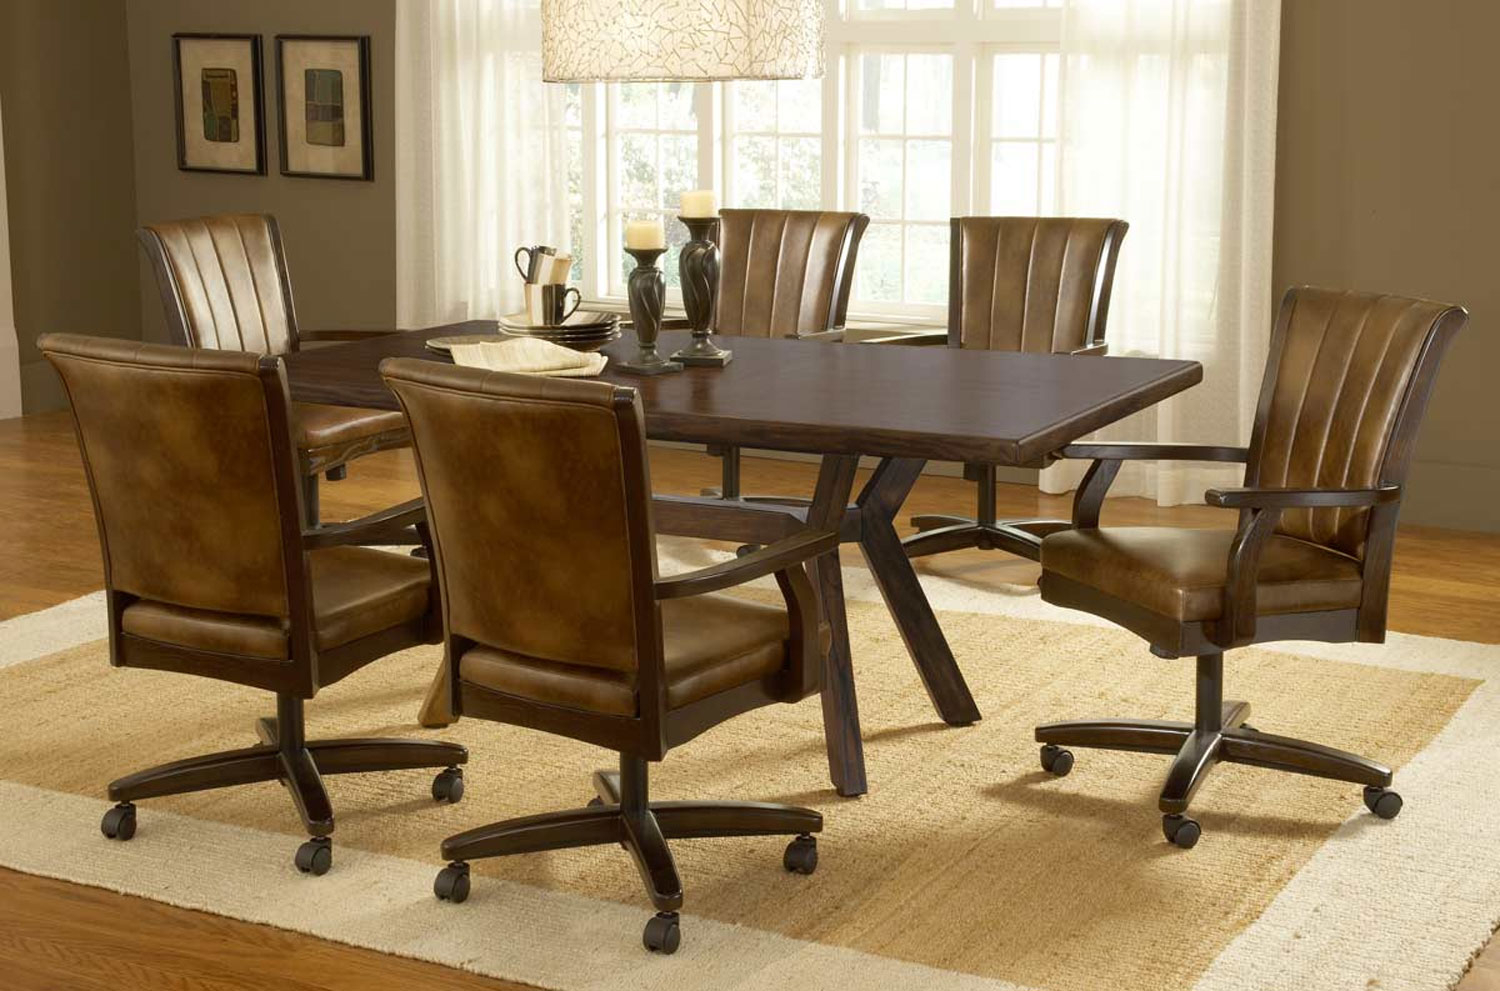 Dinette Sets With Caster Chairs You'll Love in 9   VisualHunt